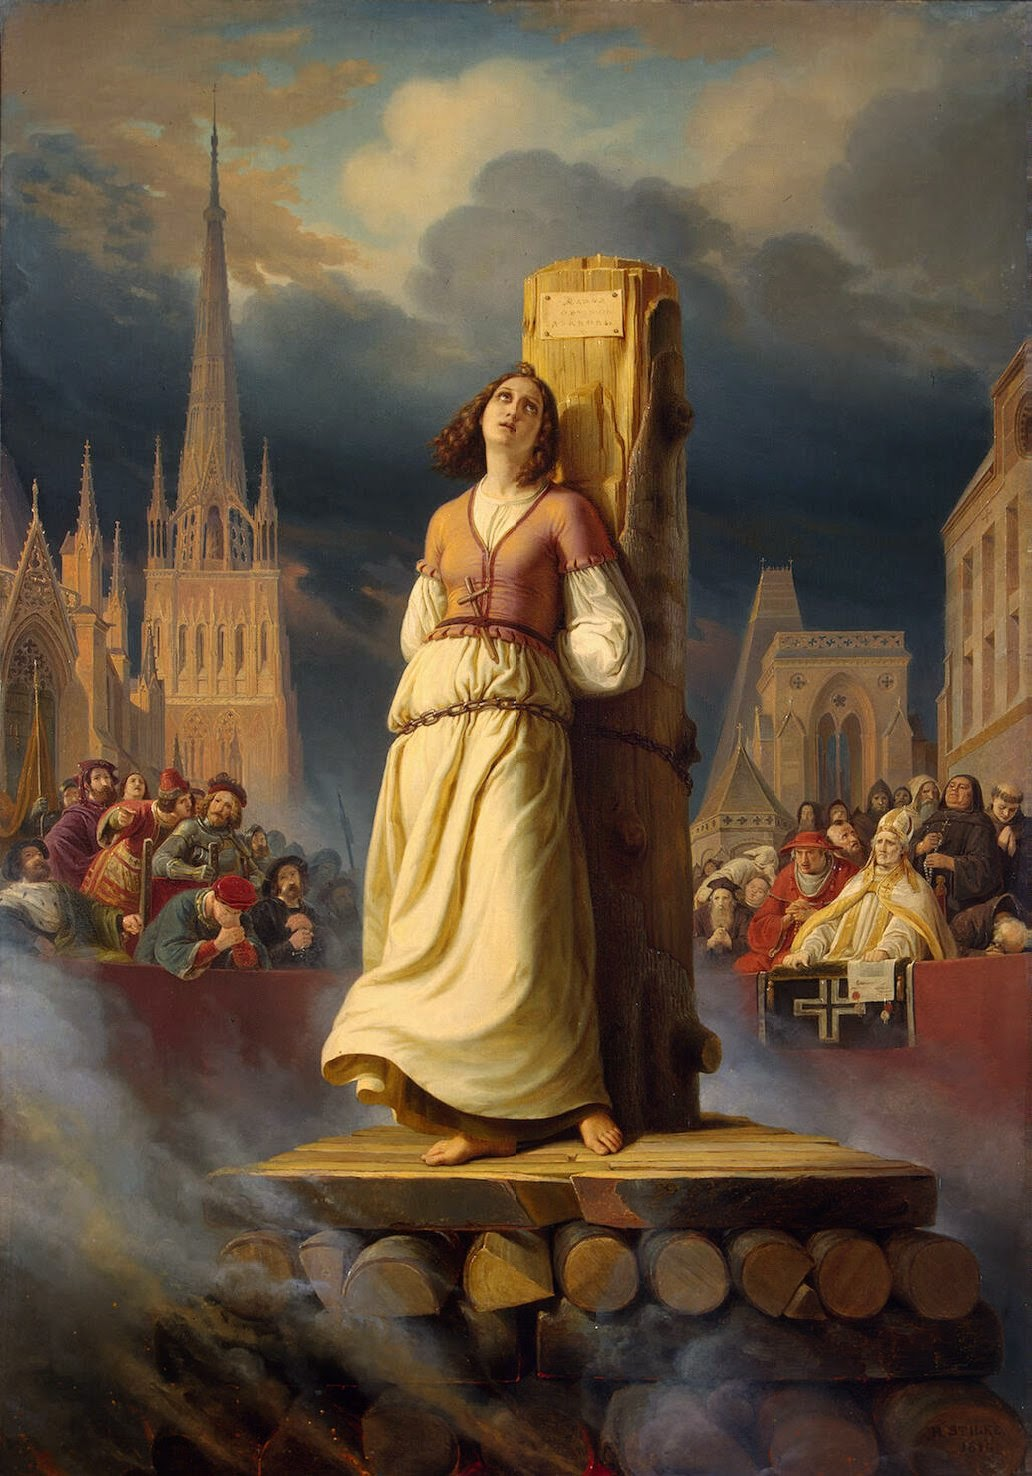 Joan of Arc – A poor peasant girl, who at a very young age rose from obscurity to shape the course of French and European history.